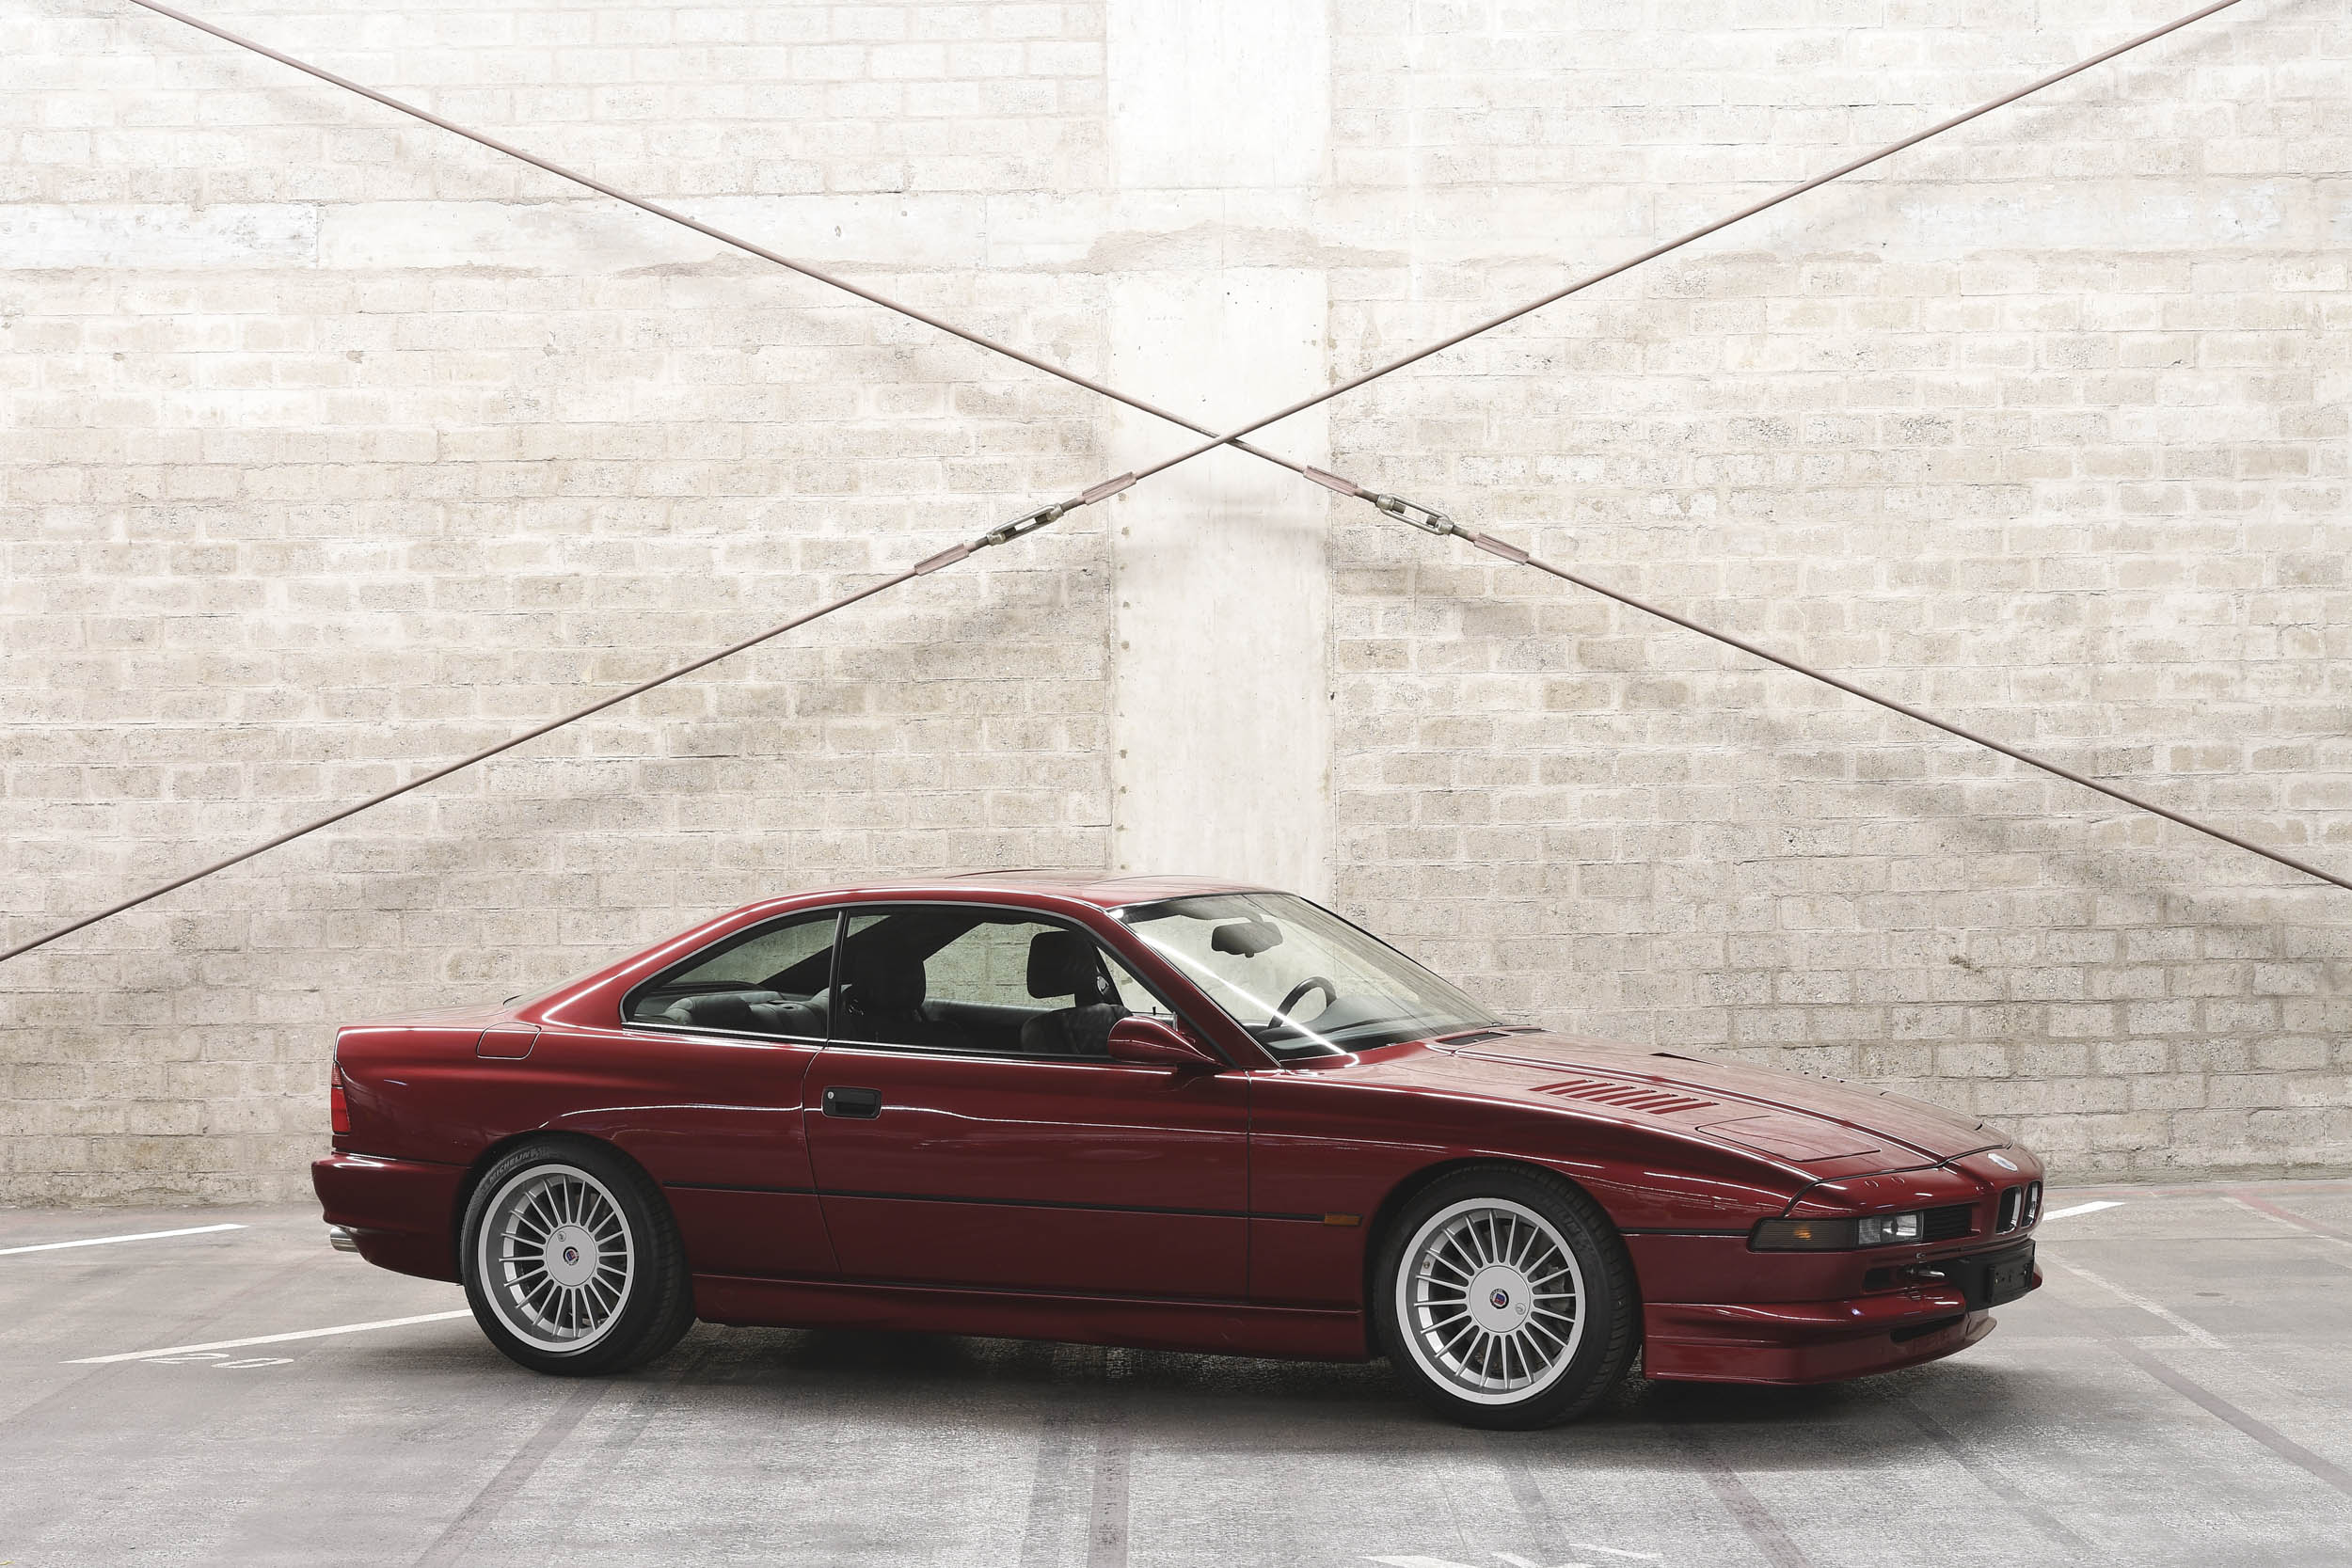 1994 BMW Alpina B12 5.7 Coupé